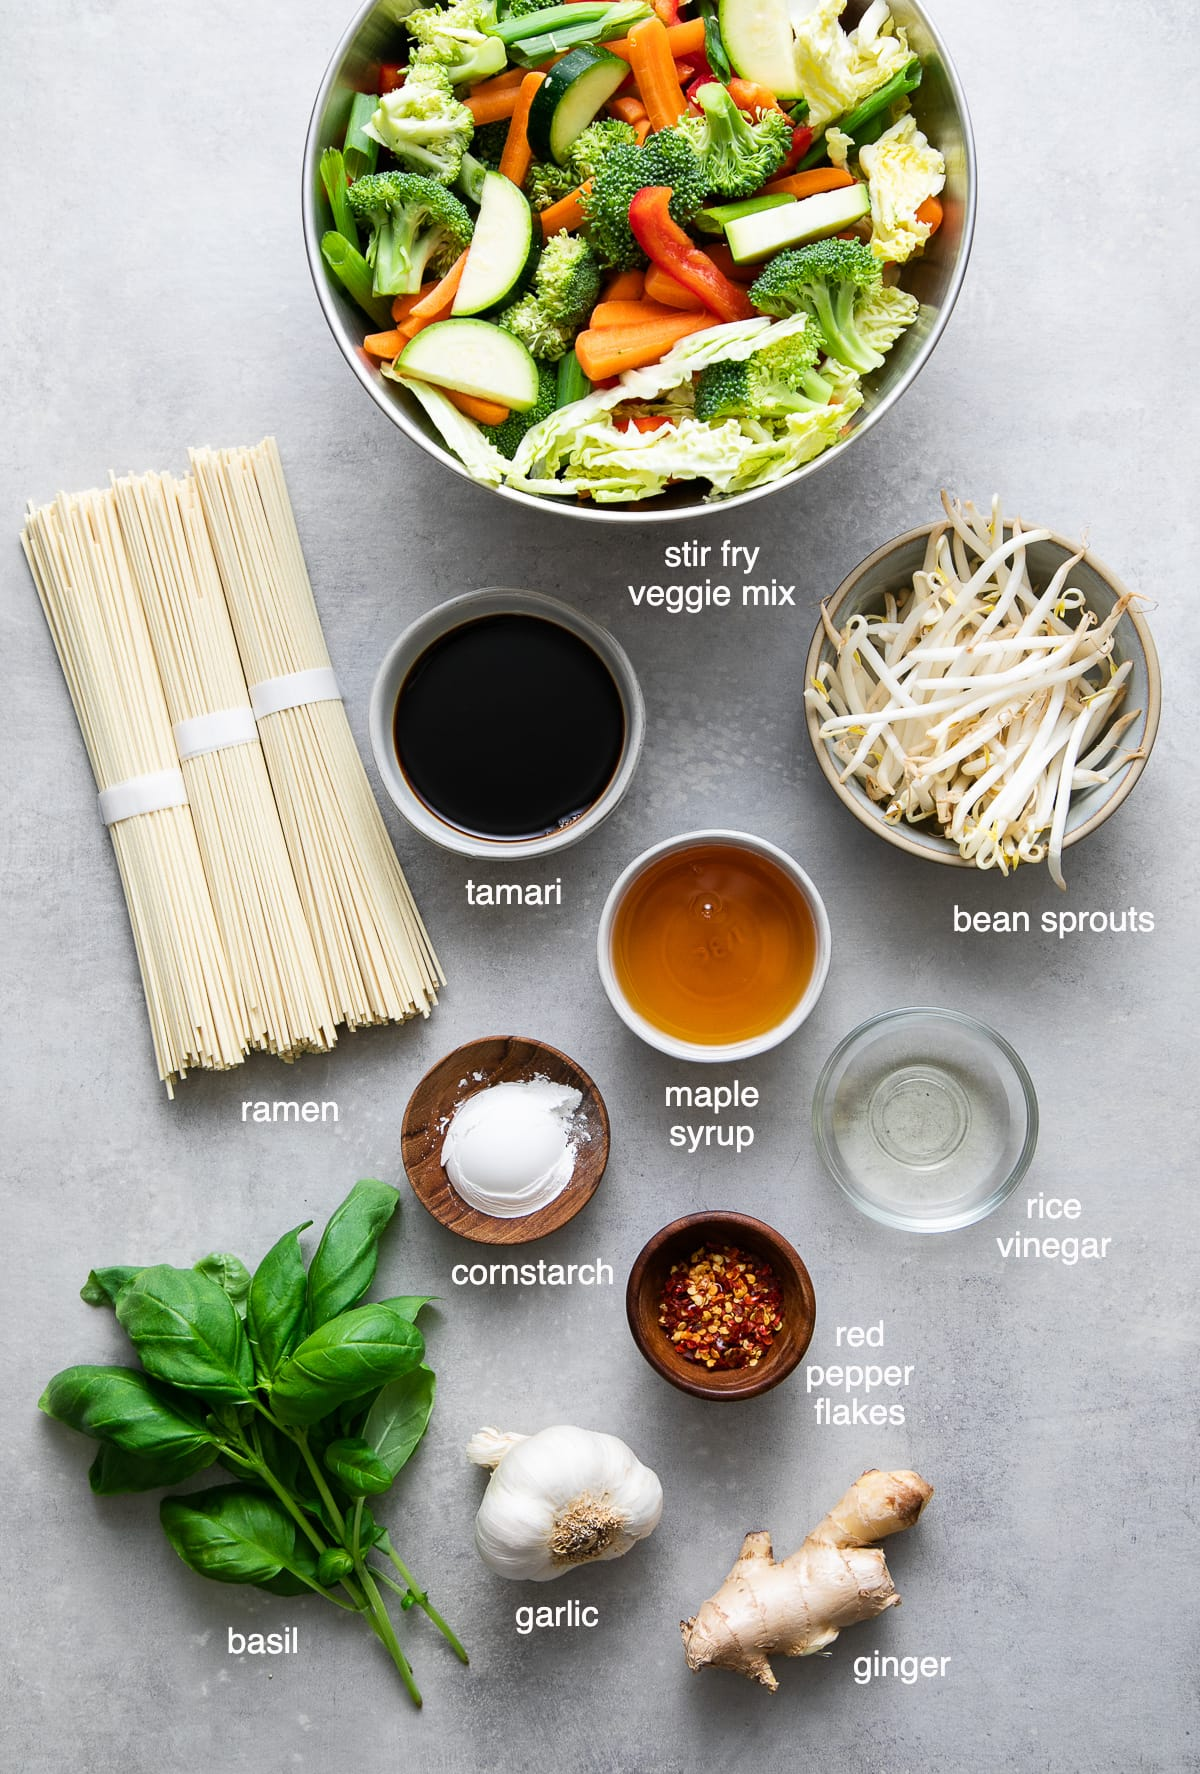 top down view of ingredients used to make ramen noodle stir fry recipe with veggies.